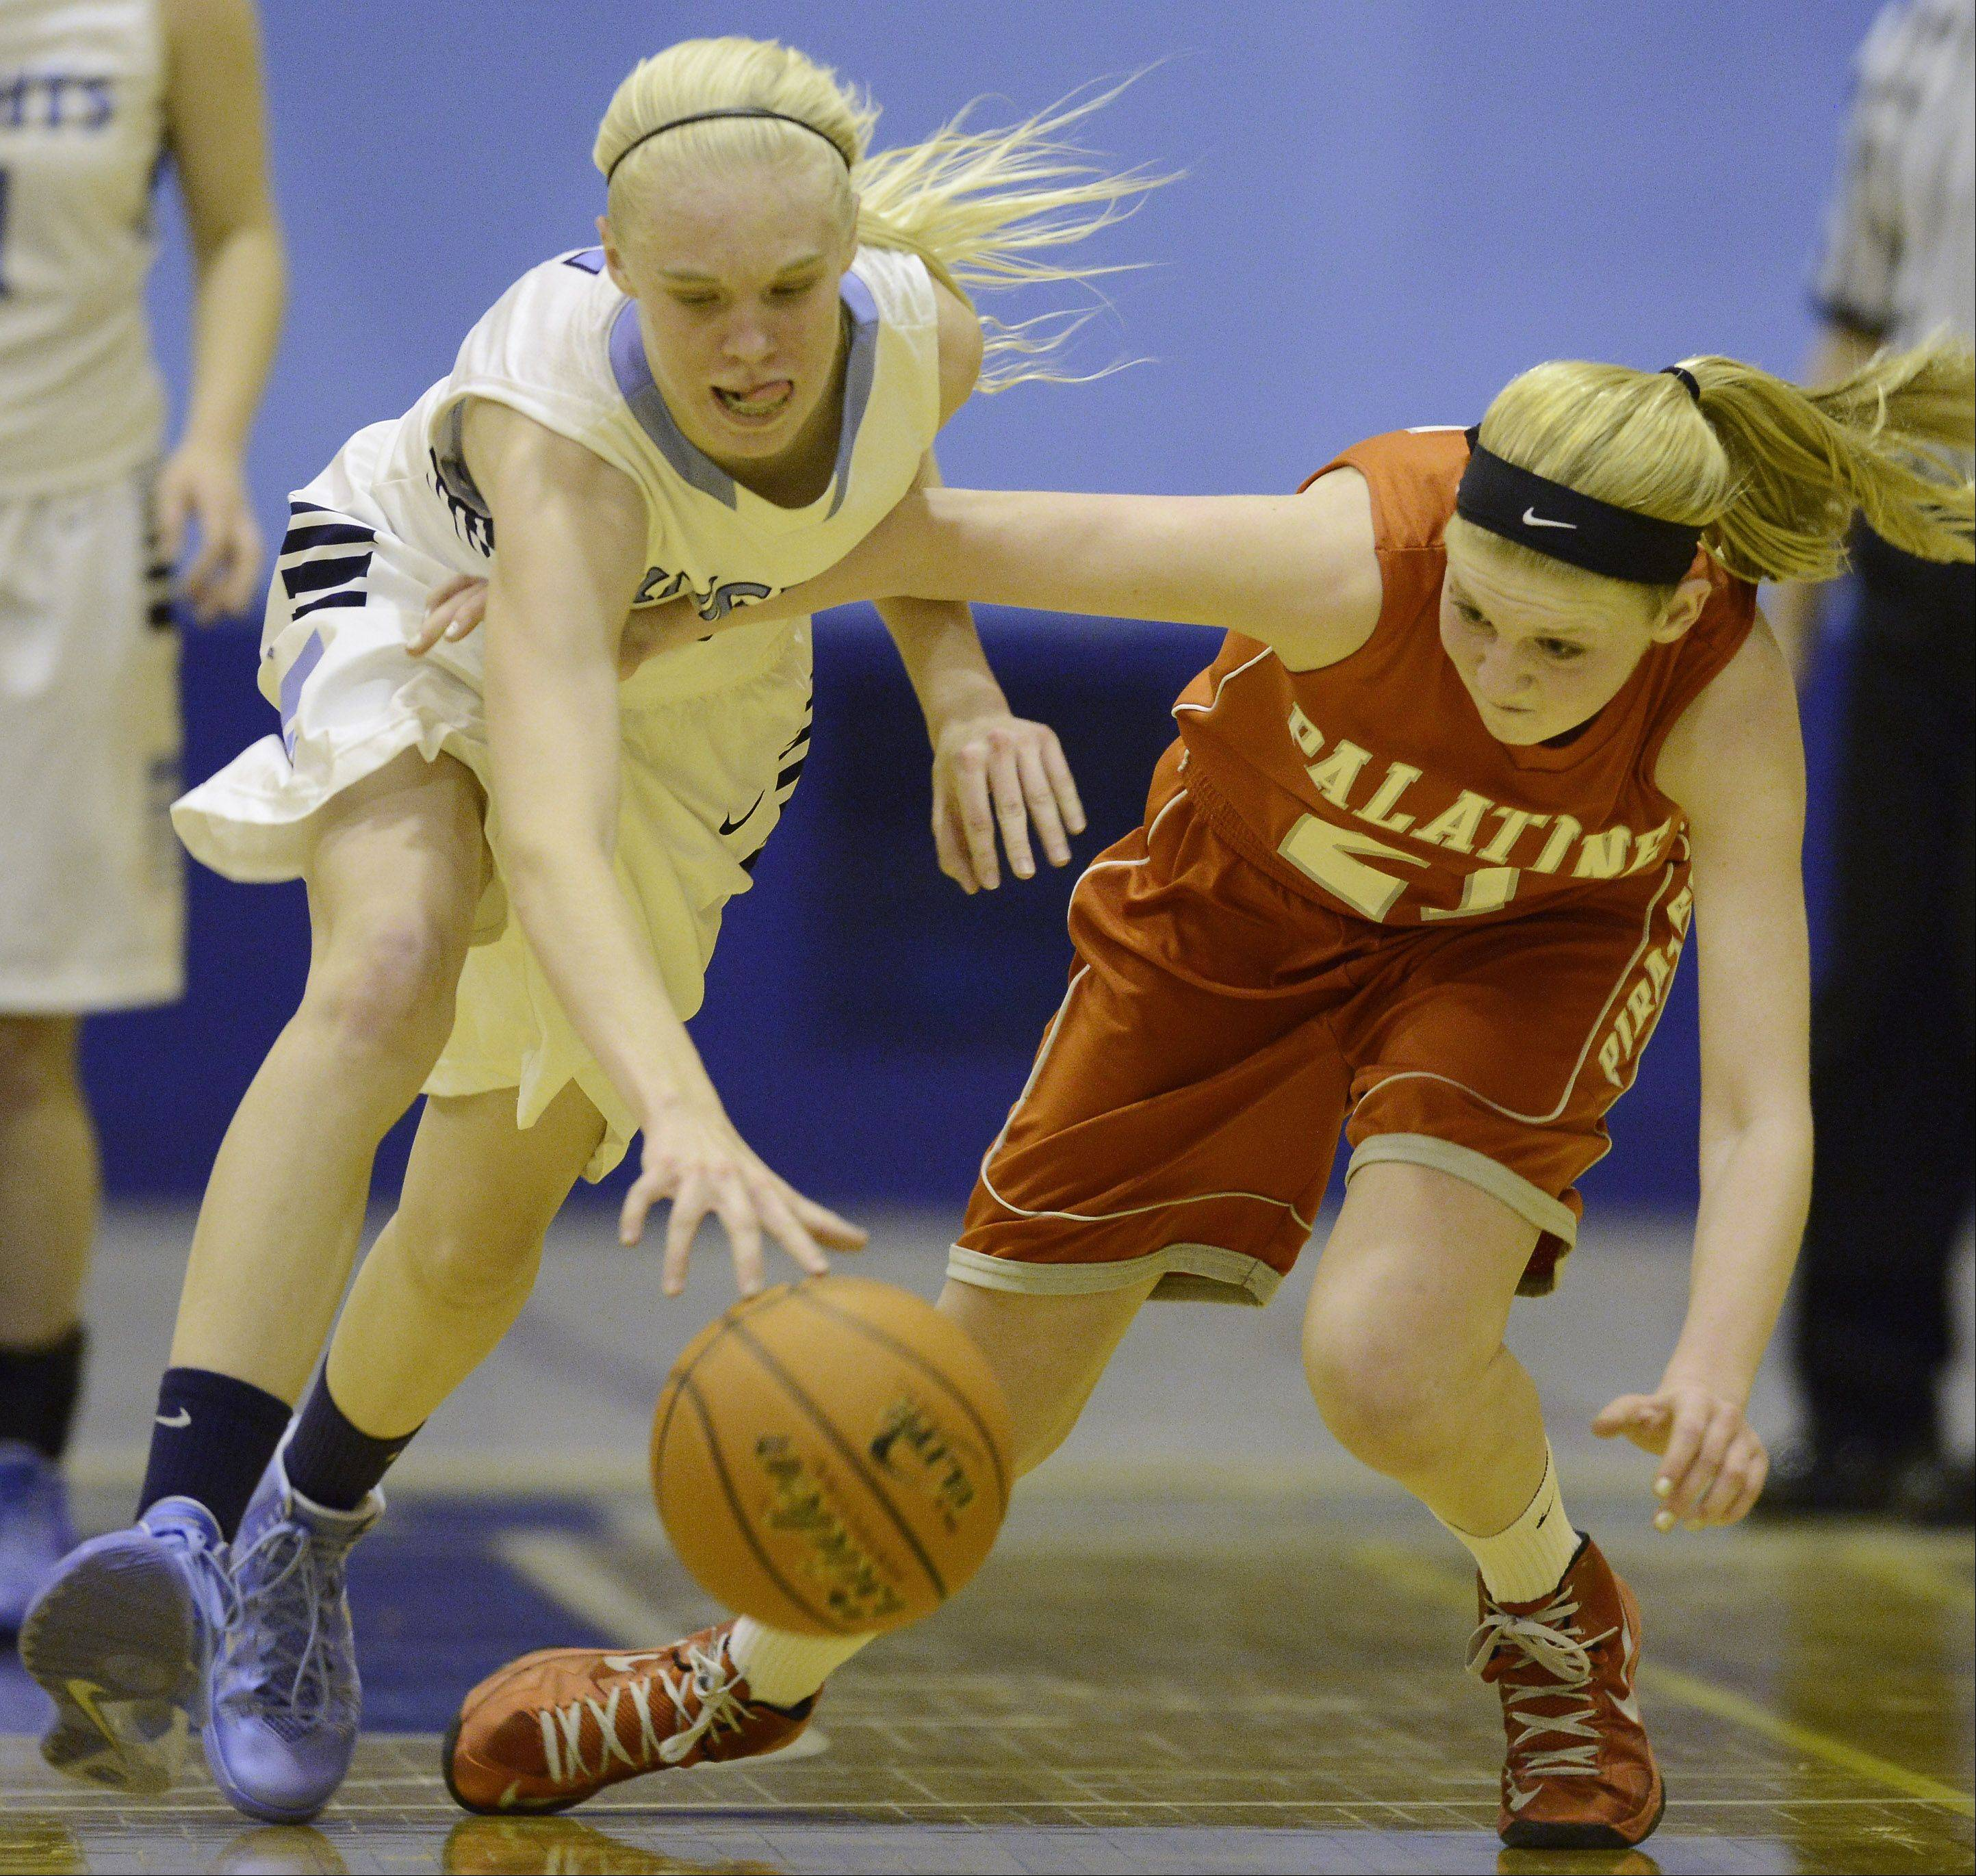 Prospect's Haley Will, left, steals the ball from Palatine's Morgan Radtke during Tuesday's game.